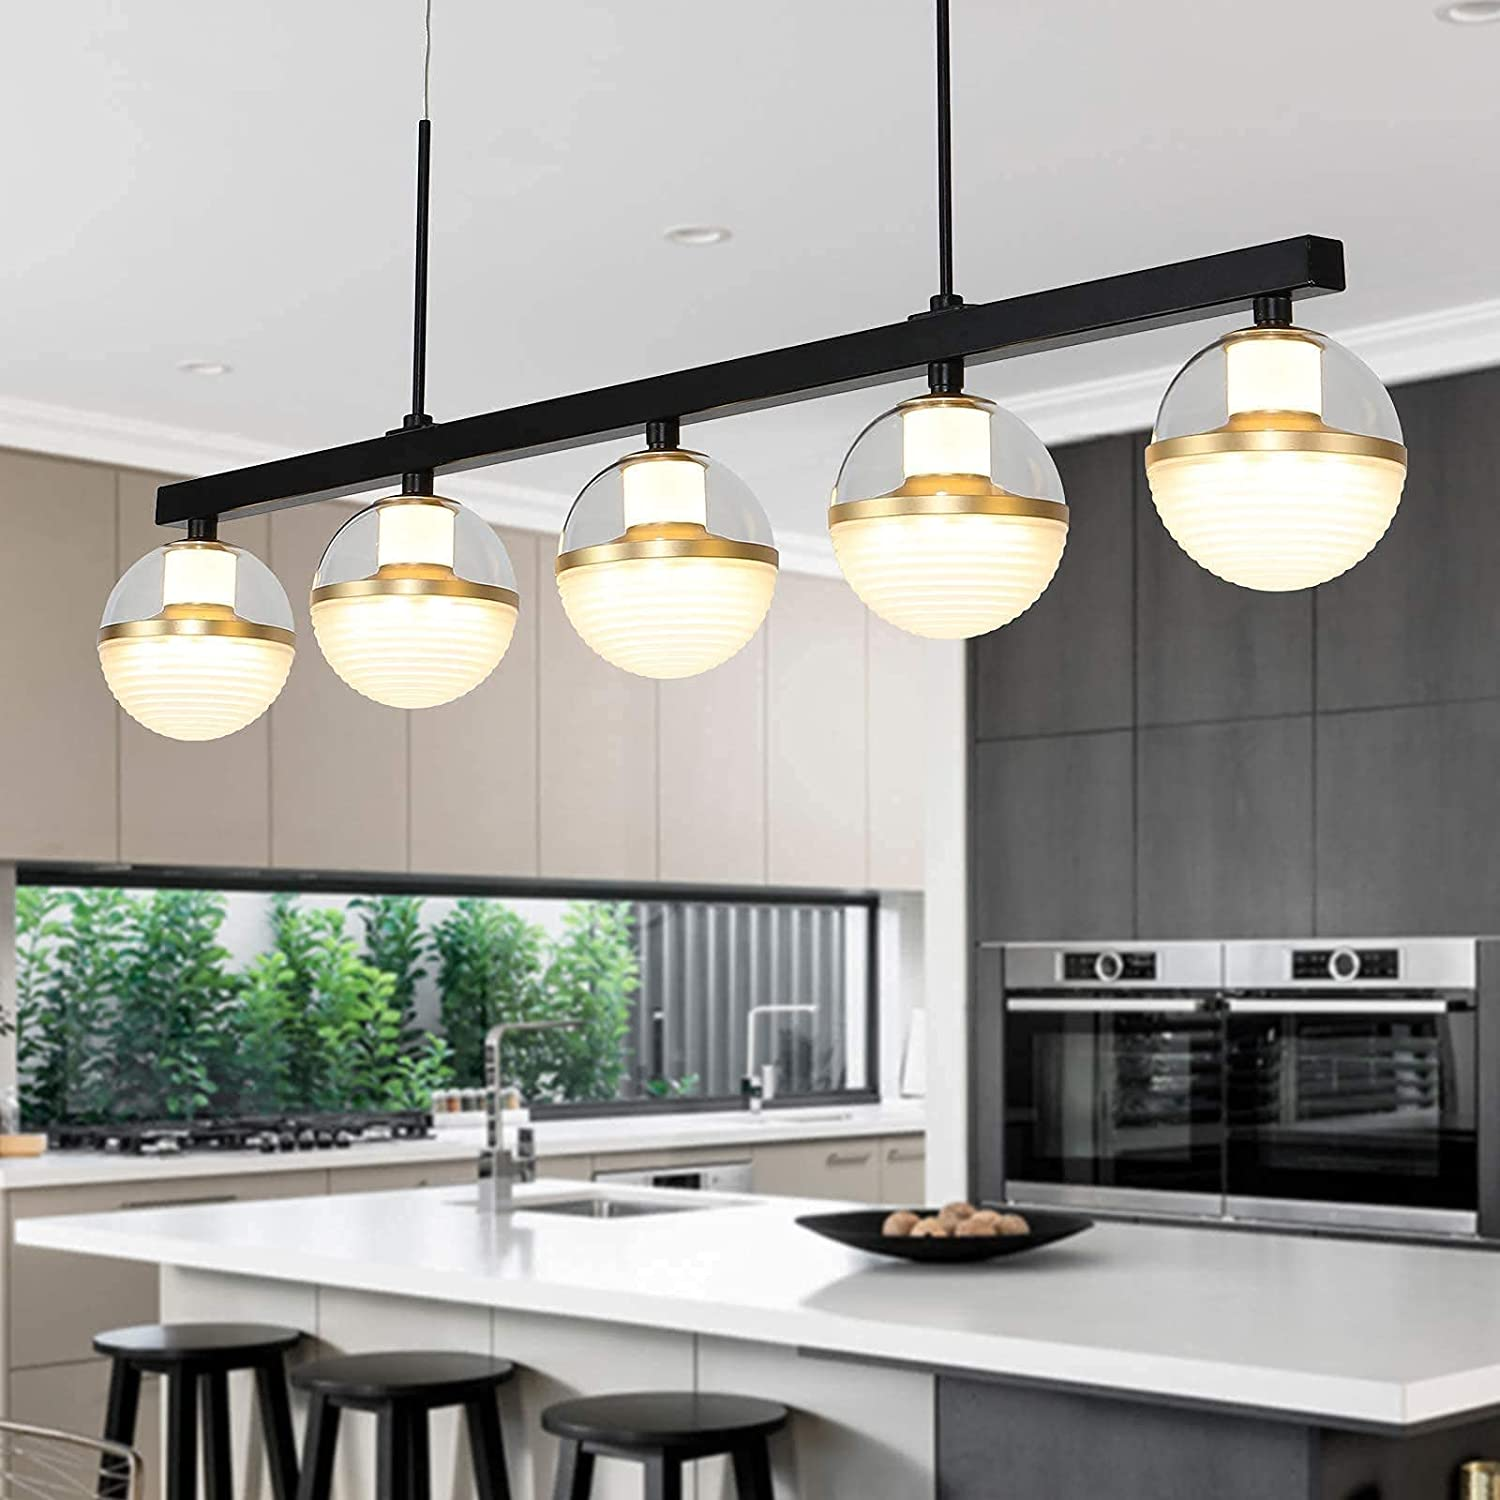 Kitchen Light Over Island 120 Lowest Price Guarantee